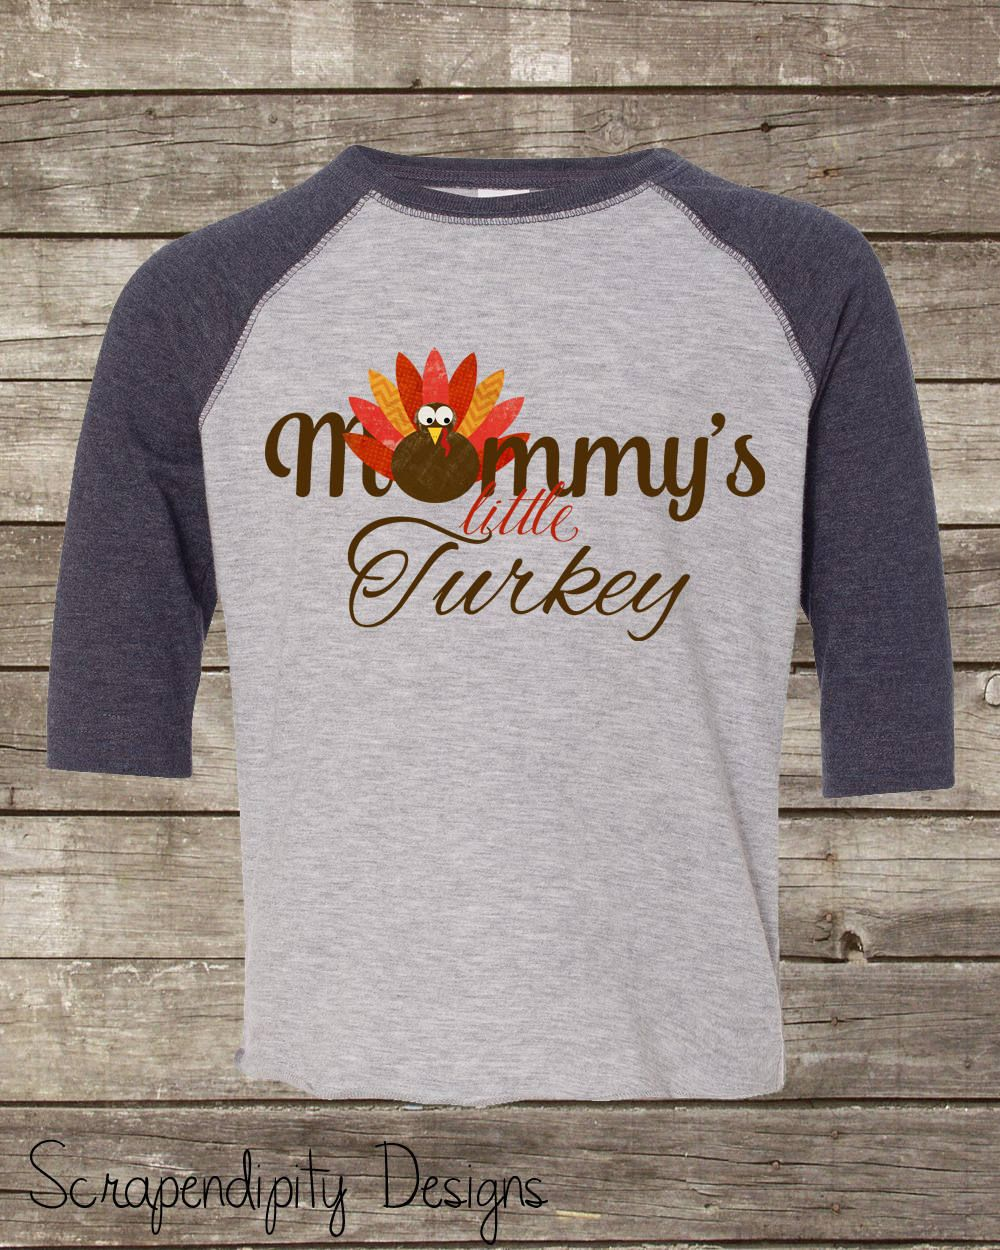 f96bdc08 Kids Thanksgiving Shirt - Mommy's Little Turkey Raglan Shirt / Toddler  Thanksgiving Tshirt / Turkey Outfit for Youth Boys / Turkey Day Shirt